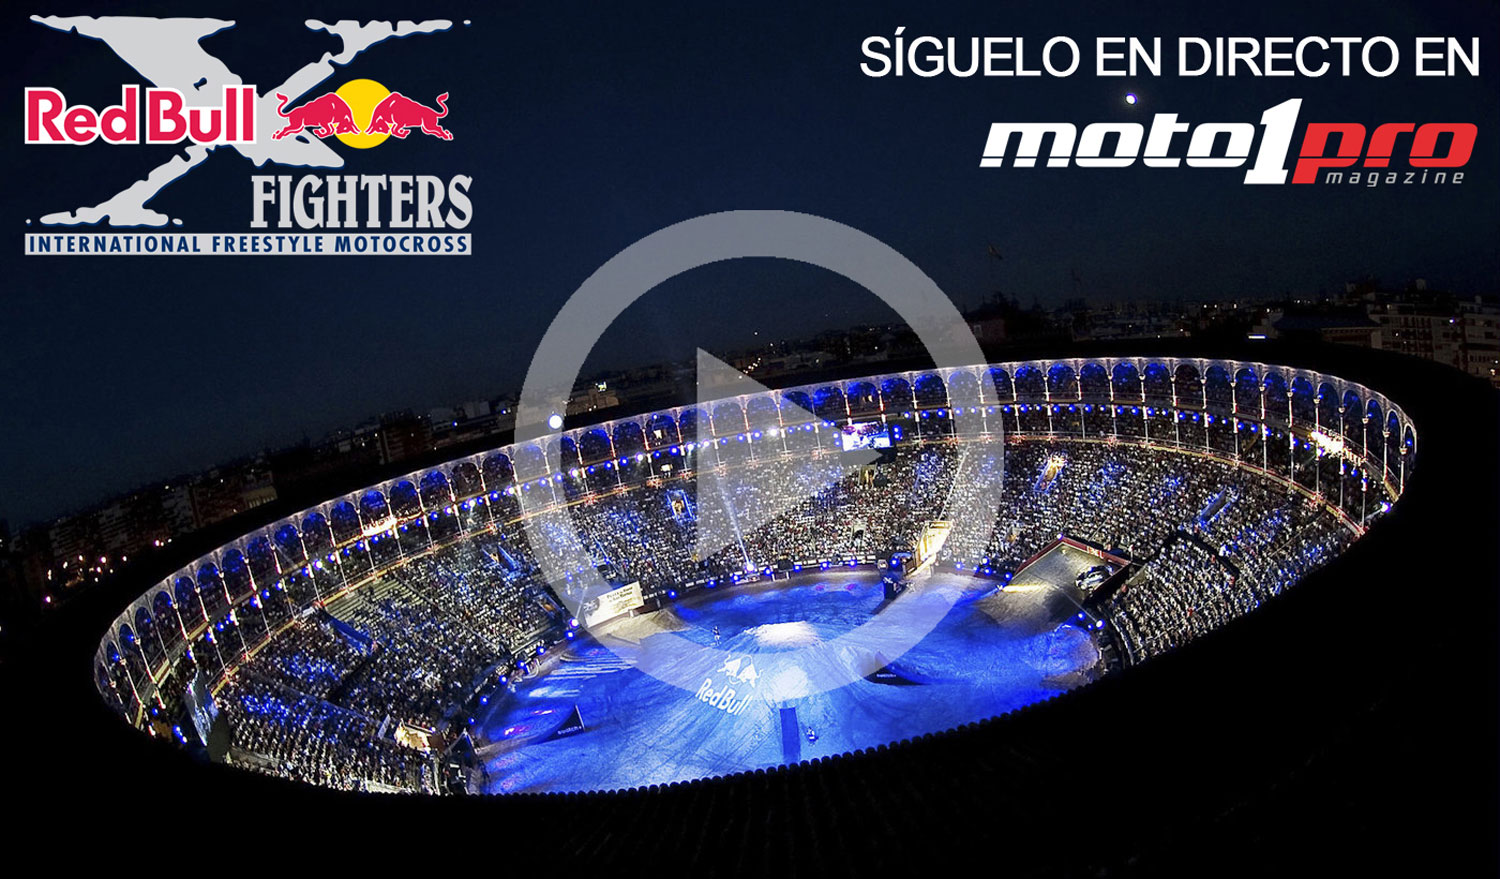 Red Bull X-Fighters en directo en Moto1Pro